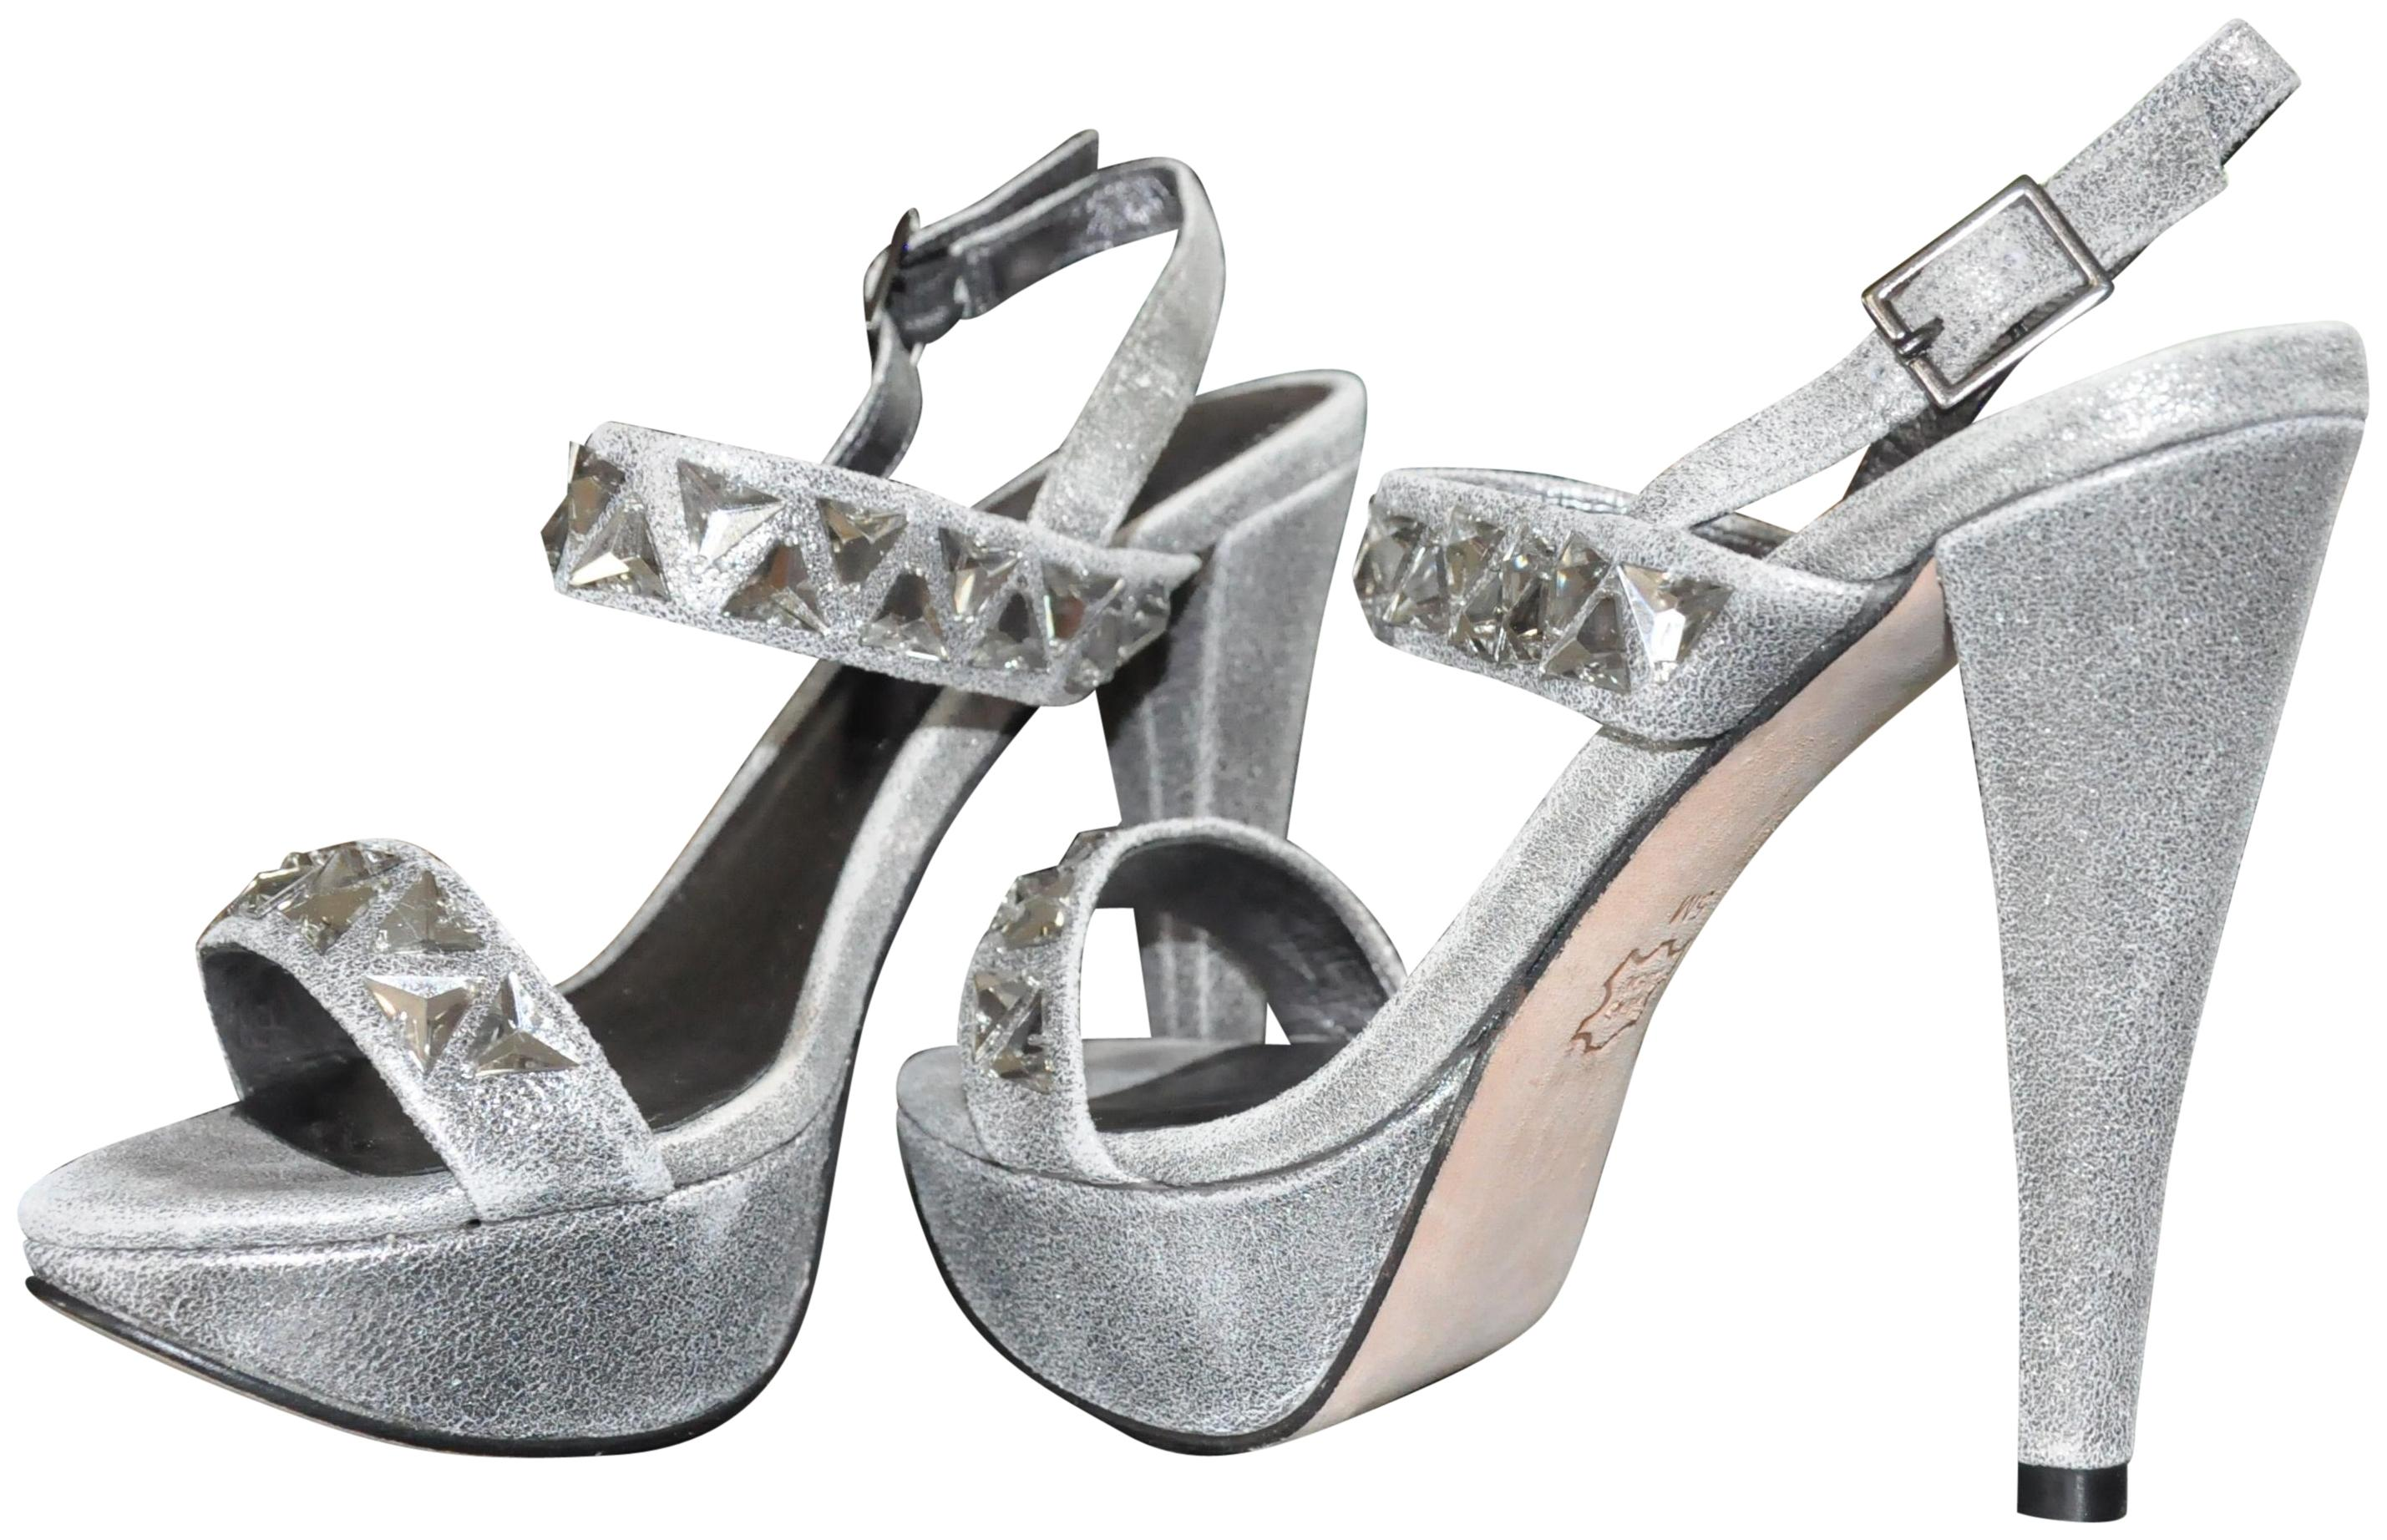 fab4858a0c2 Jessica Bennett Pewter Rocket Sandals Platforms Size US 5 5 5 ...